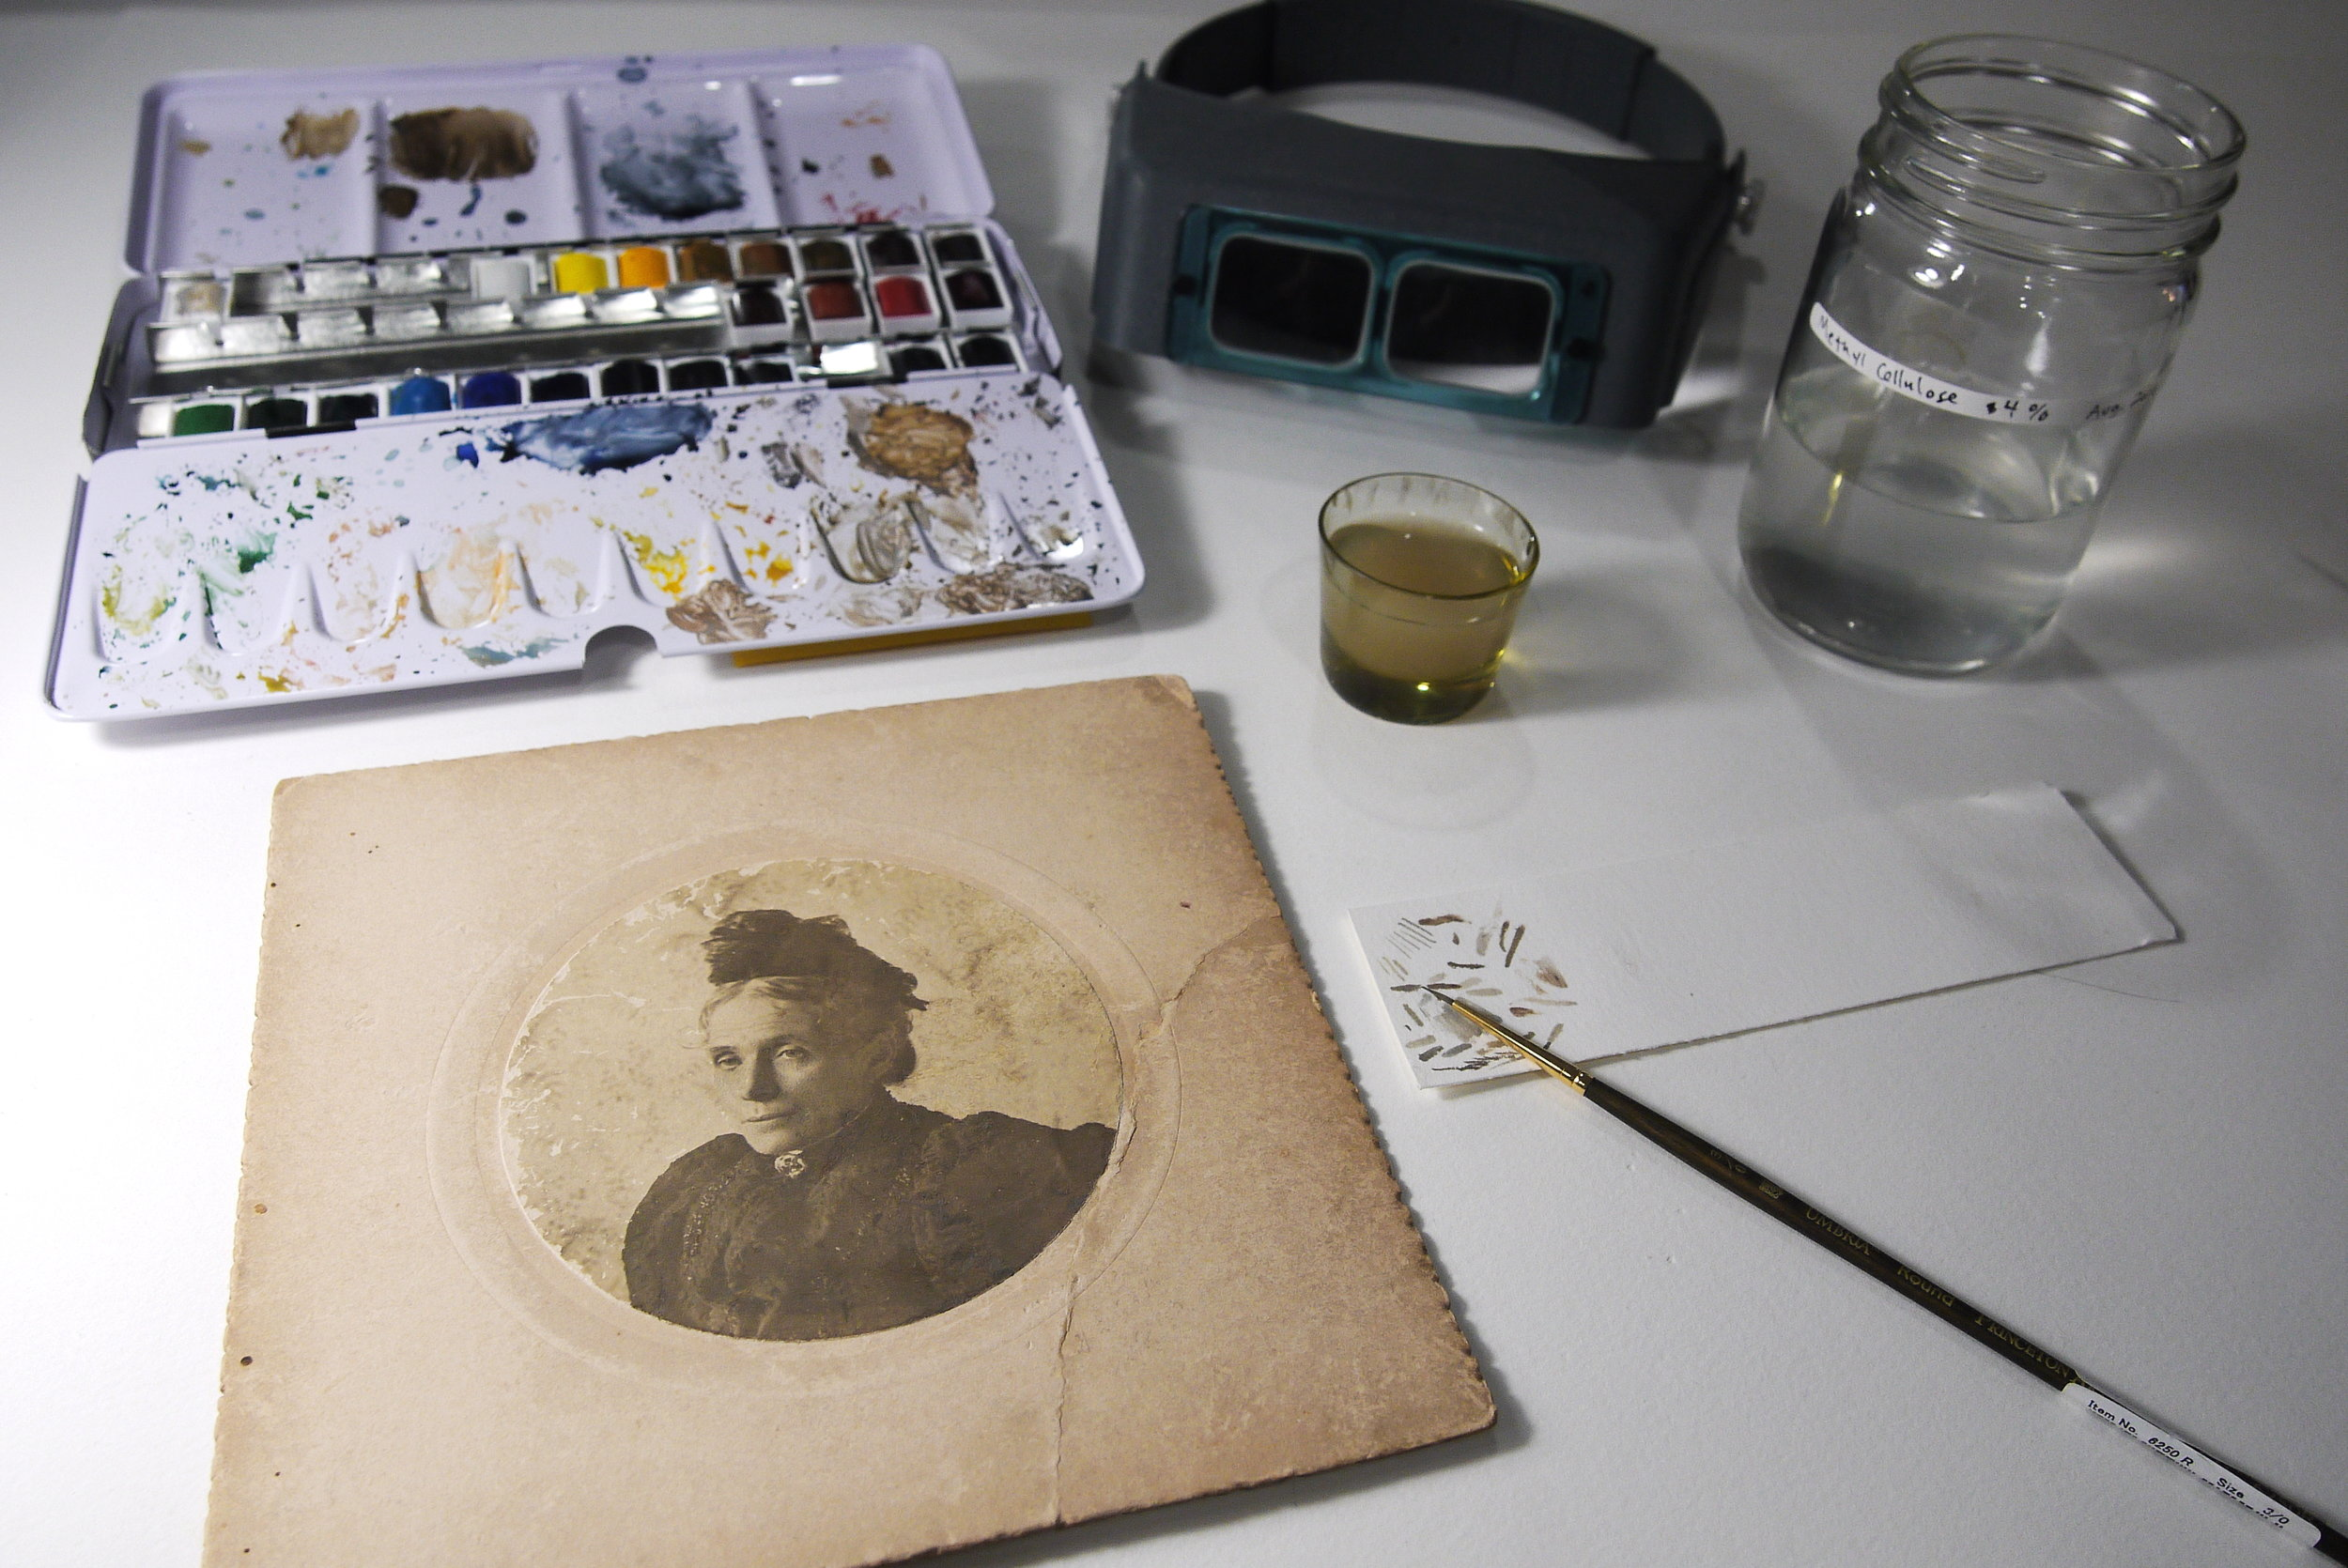 Inpainting set-up for conservation treatment of the photograph.